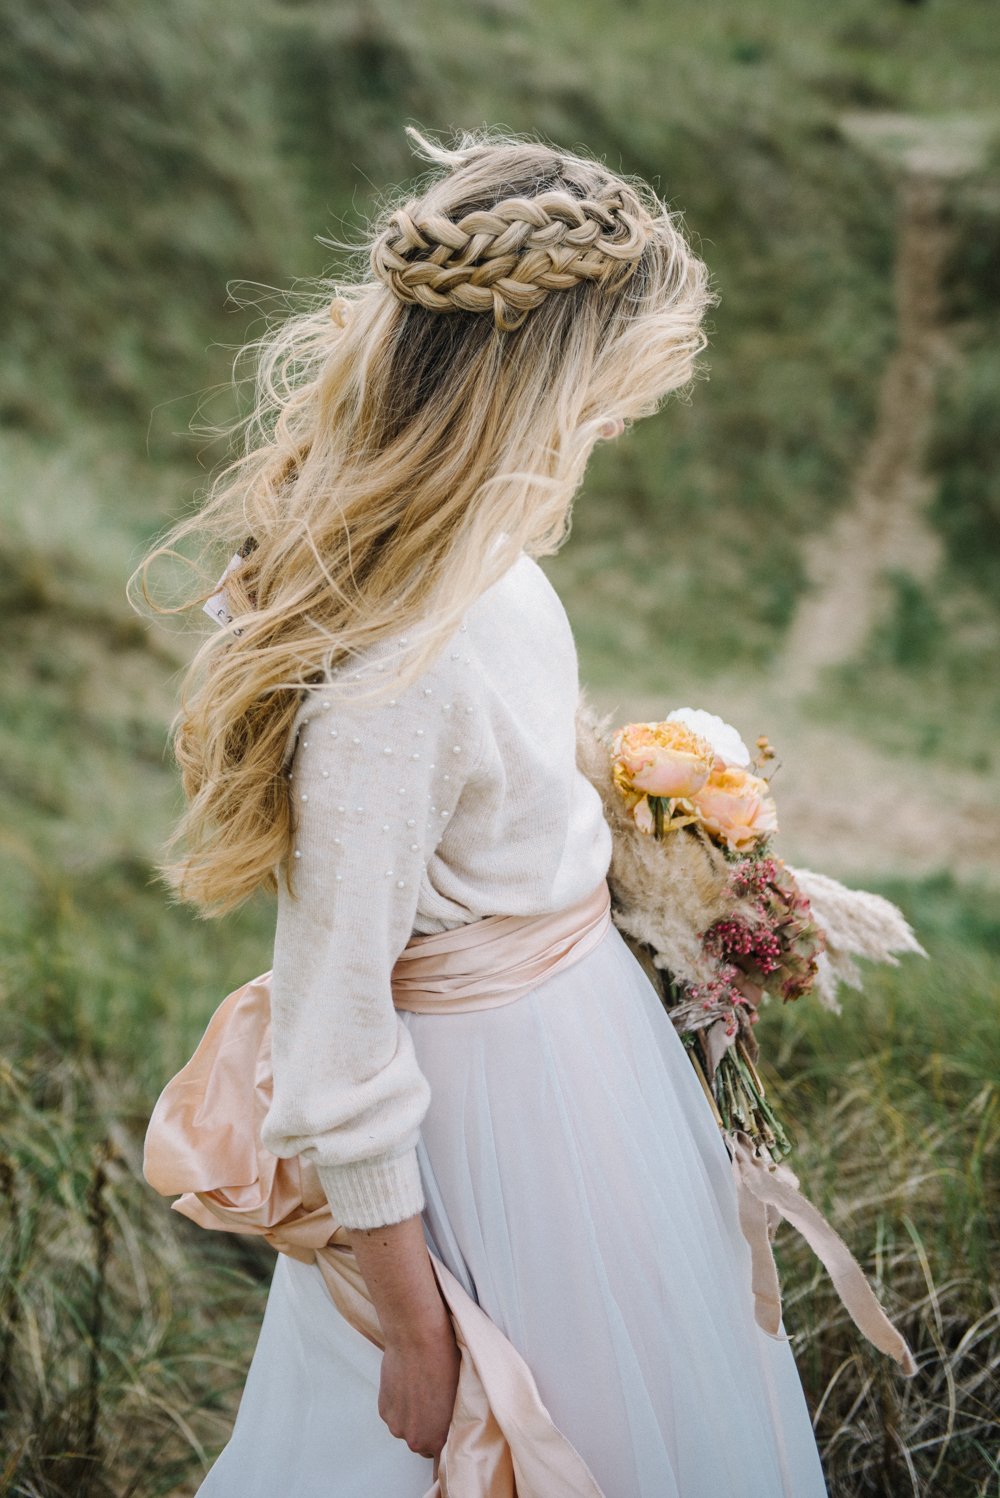 Autumn Breeze // Editorial for Rock My Wedding